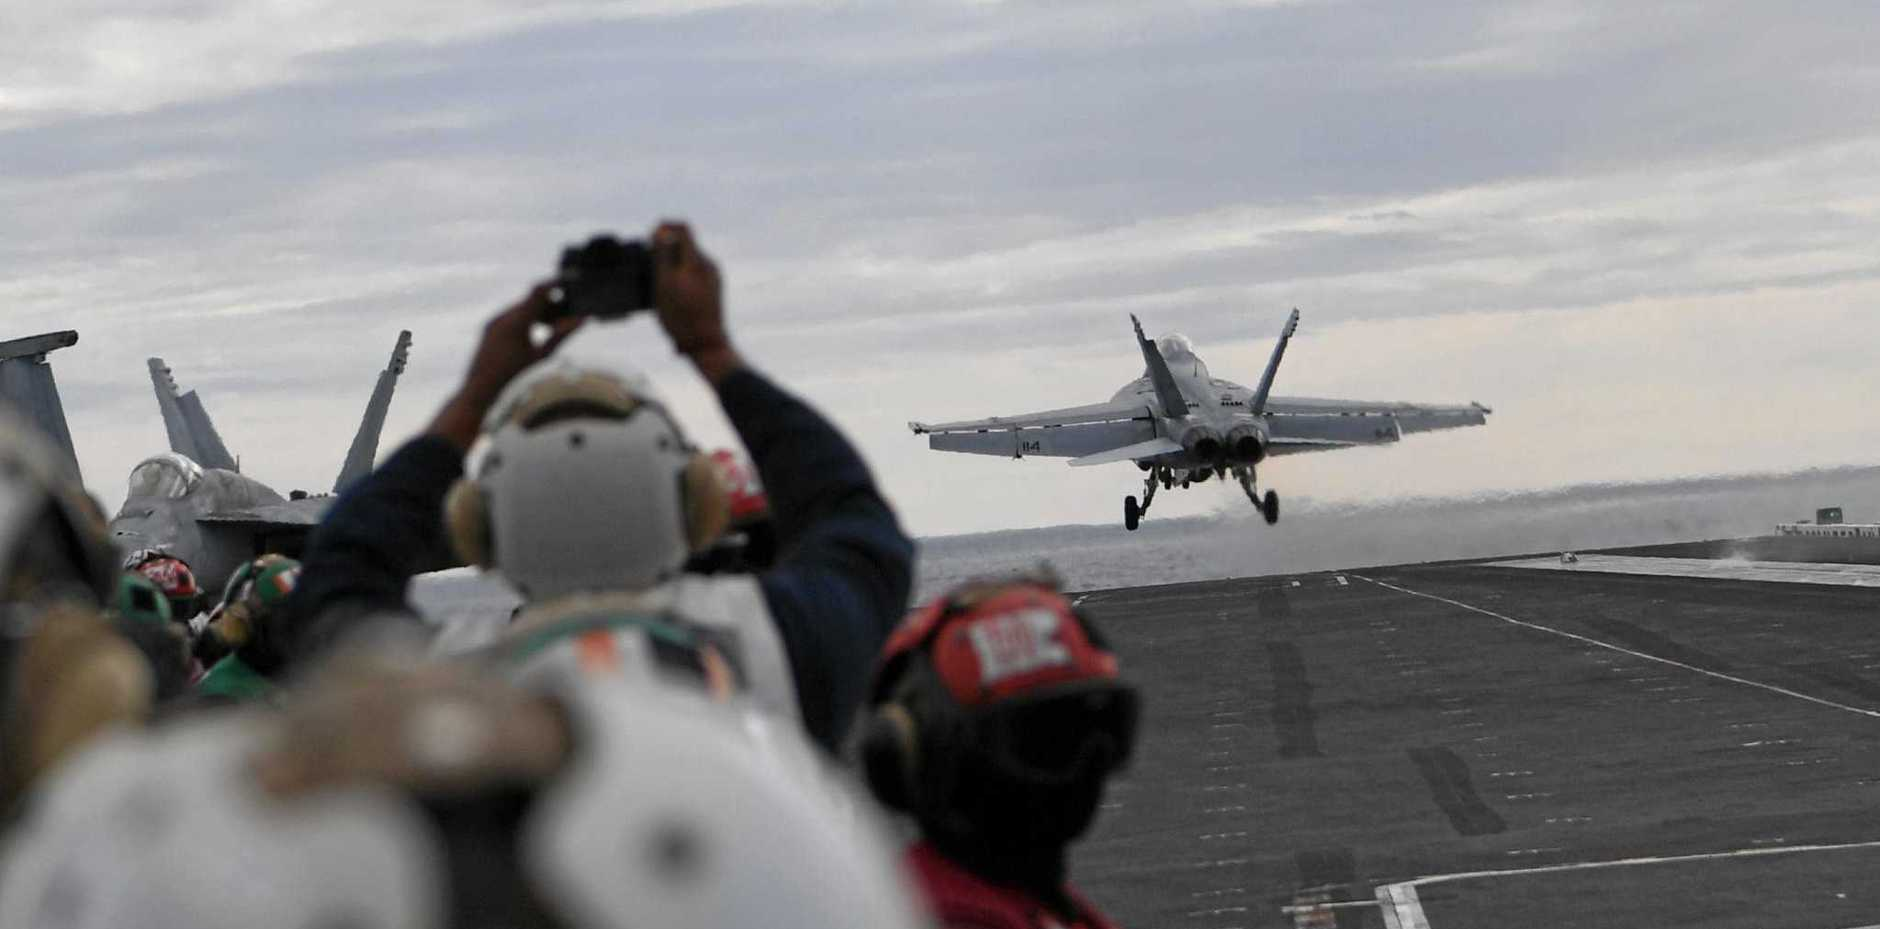 Up, up and away from the flight deck.